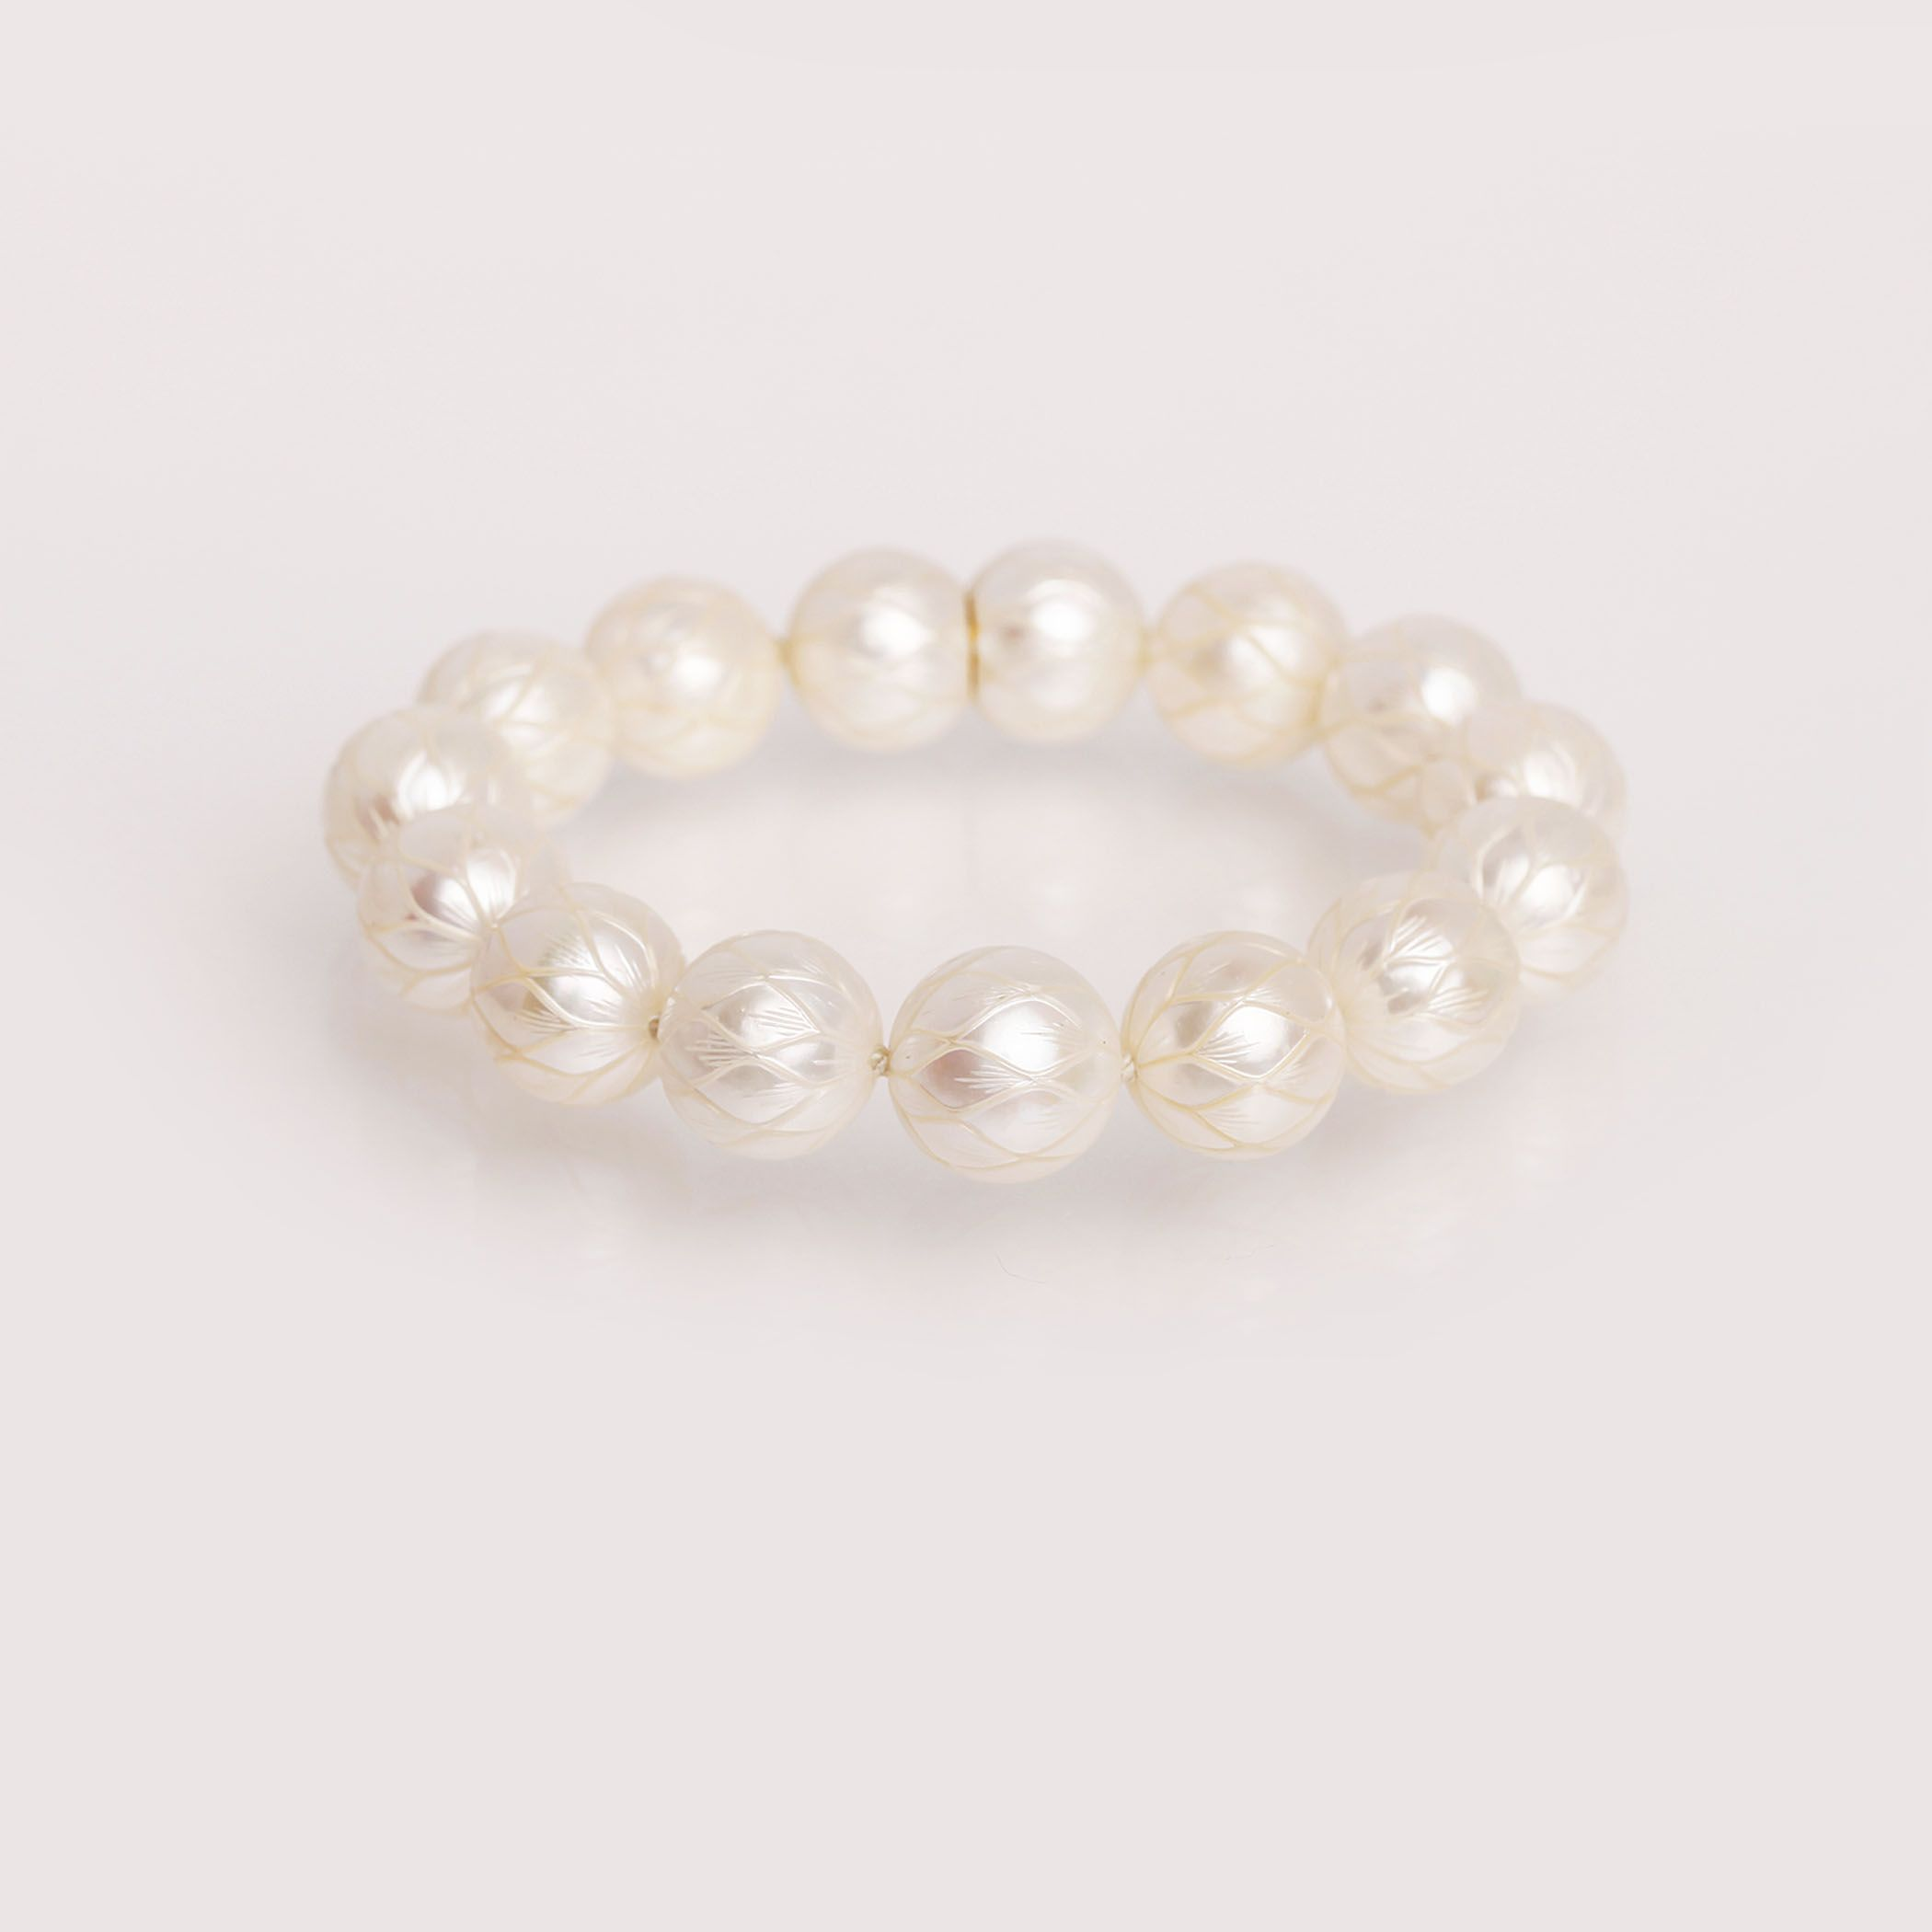 pin day look beautiful complete your to bracelet bracelets jewelry bridal pearl wedding